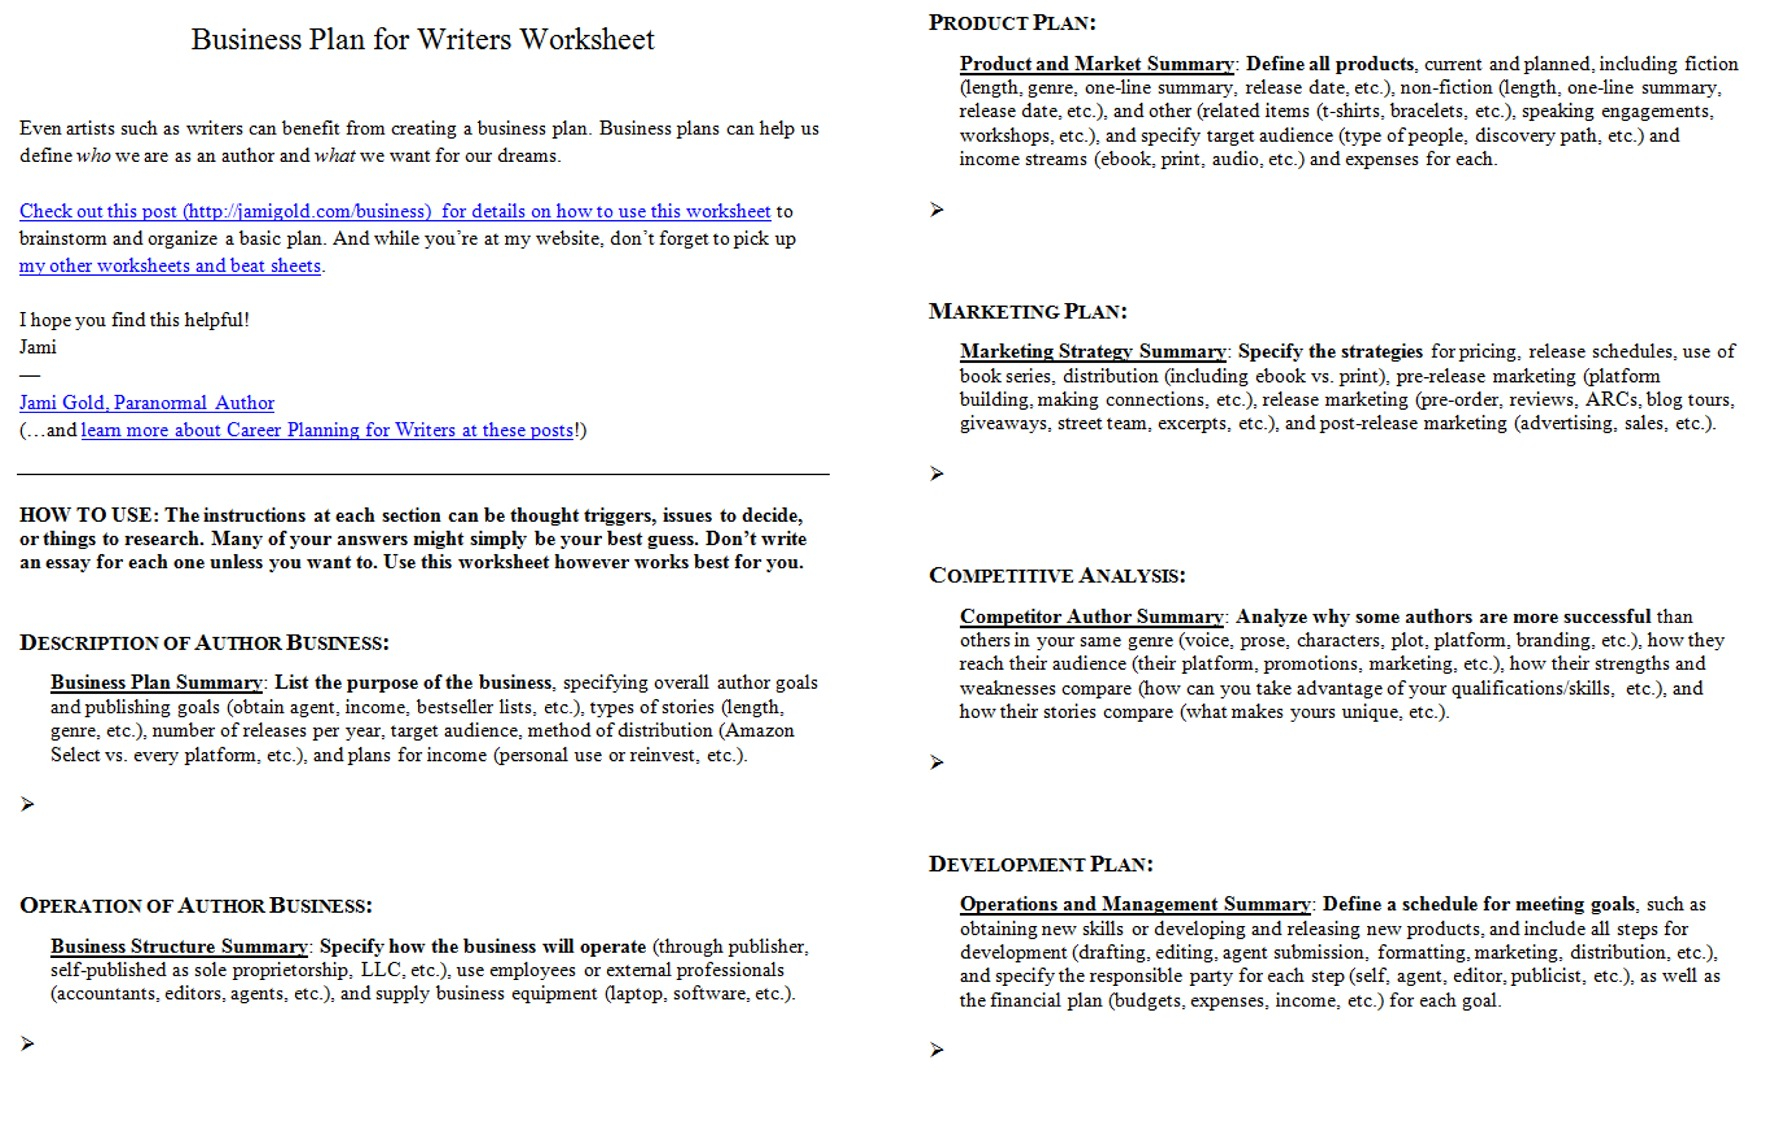 Weirdmailus  Seductive Worksheets For Writers  Jami Gold Paranormal Author With Great Screen Shot Of Both Pages Of The Business Plan For Writers Worksheet With Easy On The Eye Worksheets For Junior Kg Also Maths Pyramid Worksheet In Addition Seasons Worksheets For Kids And Codependency Worksheets As Well As Prefix And Suffix Worksheets Nd Grade Additionally Worksheet Angles Of Depression And Elevation Answers From Jamigoldcom With Weirdmailus  Great Worksheets For Writers  Jami Gold Paranormal Author With Easy On The Eye Screen Shot Of Both Pages Of The Business Plan For Writers Worksheet And Seductive Worksheets For Junior Kg Also Maths Pyramid Worksheet In Addition Seasons Worksheets For Kids From Jamigoldcom